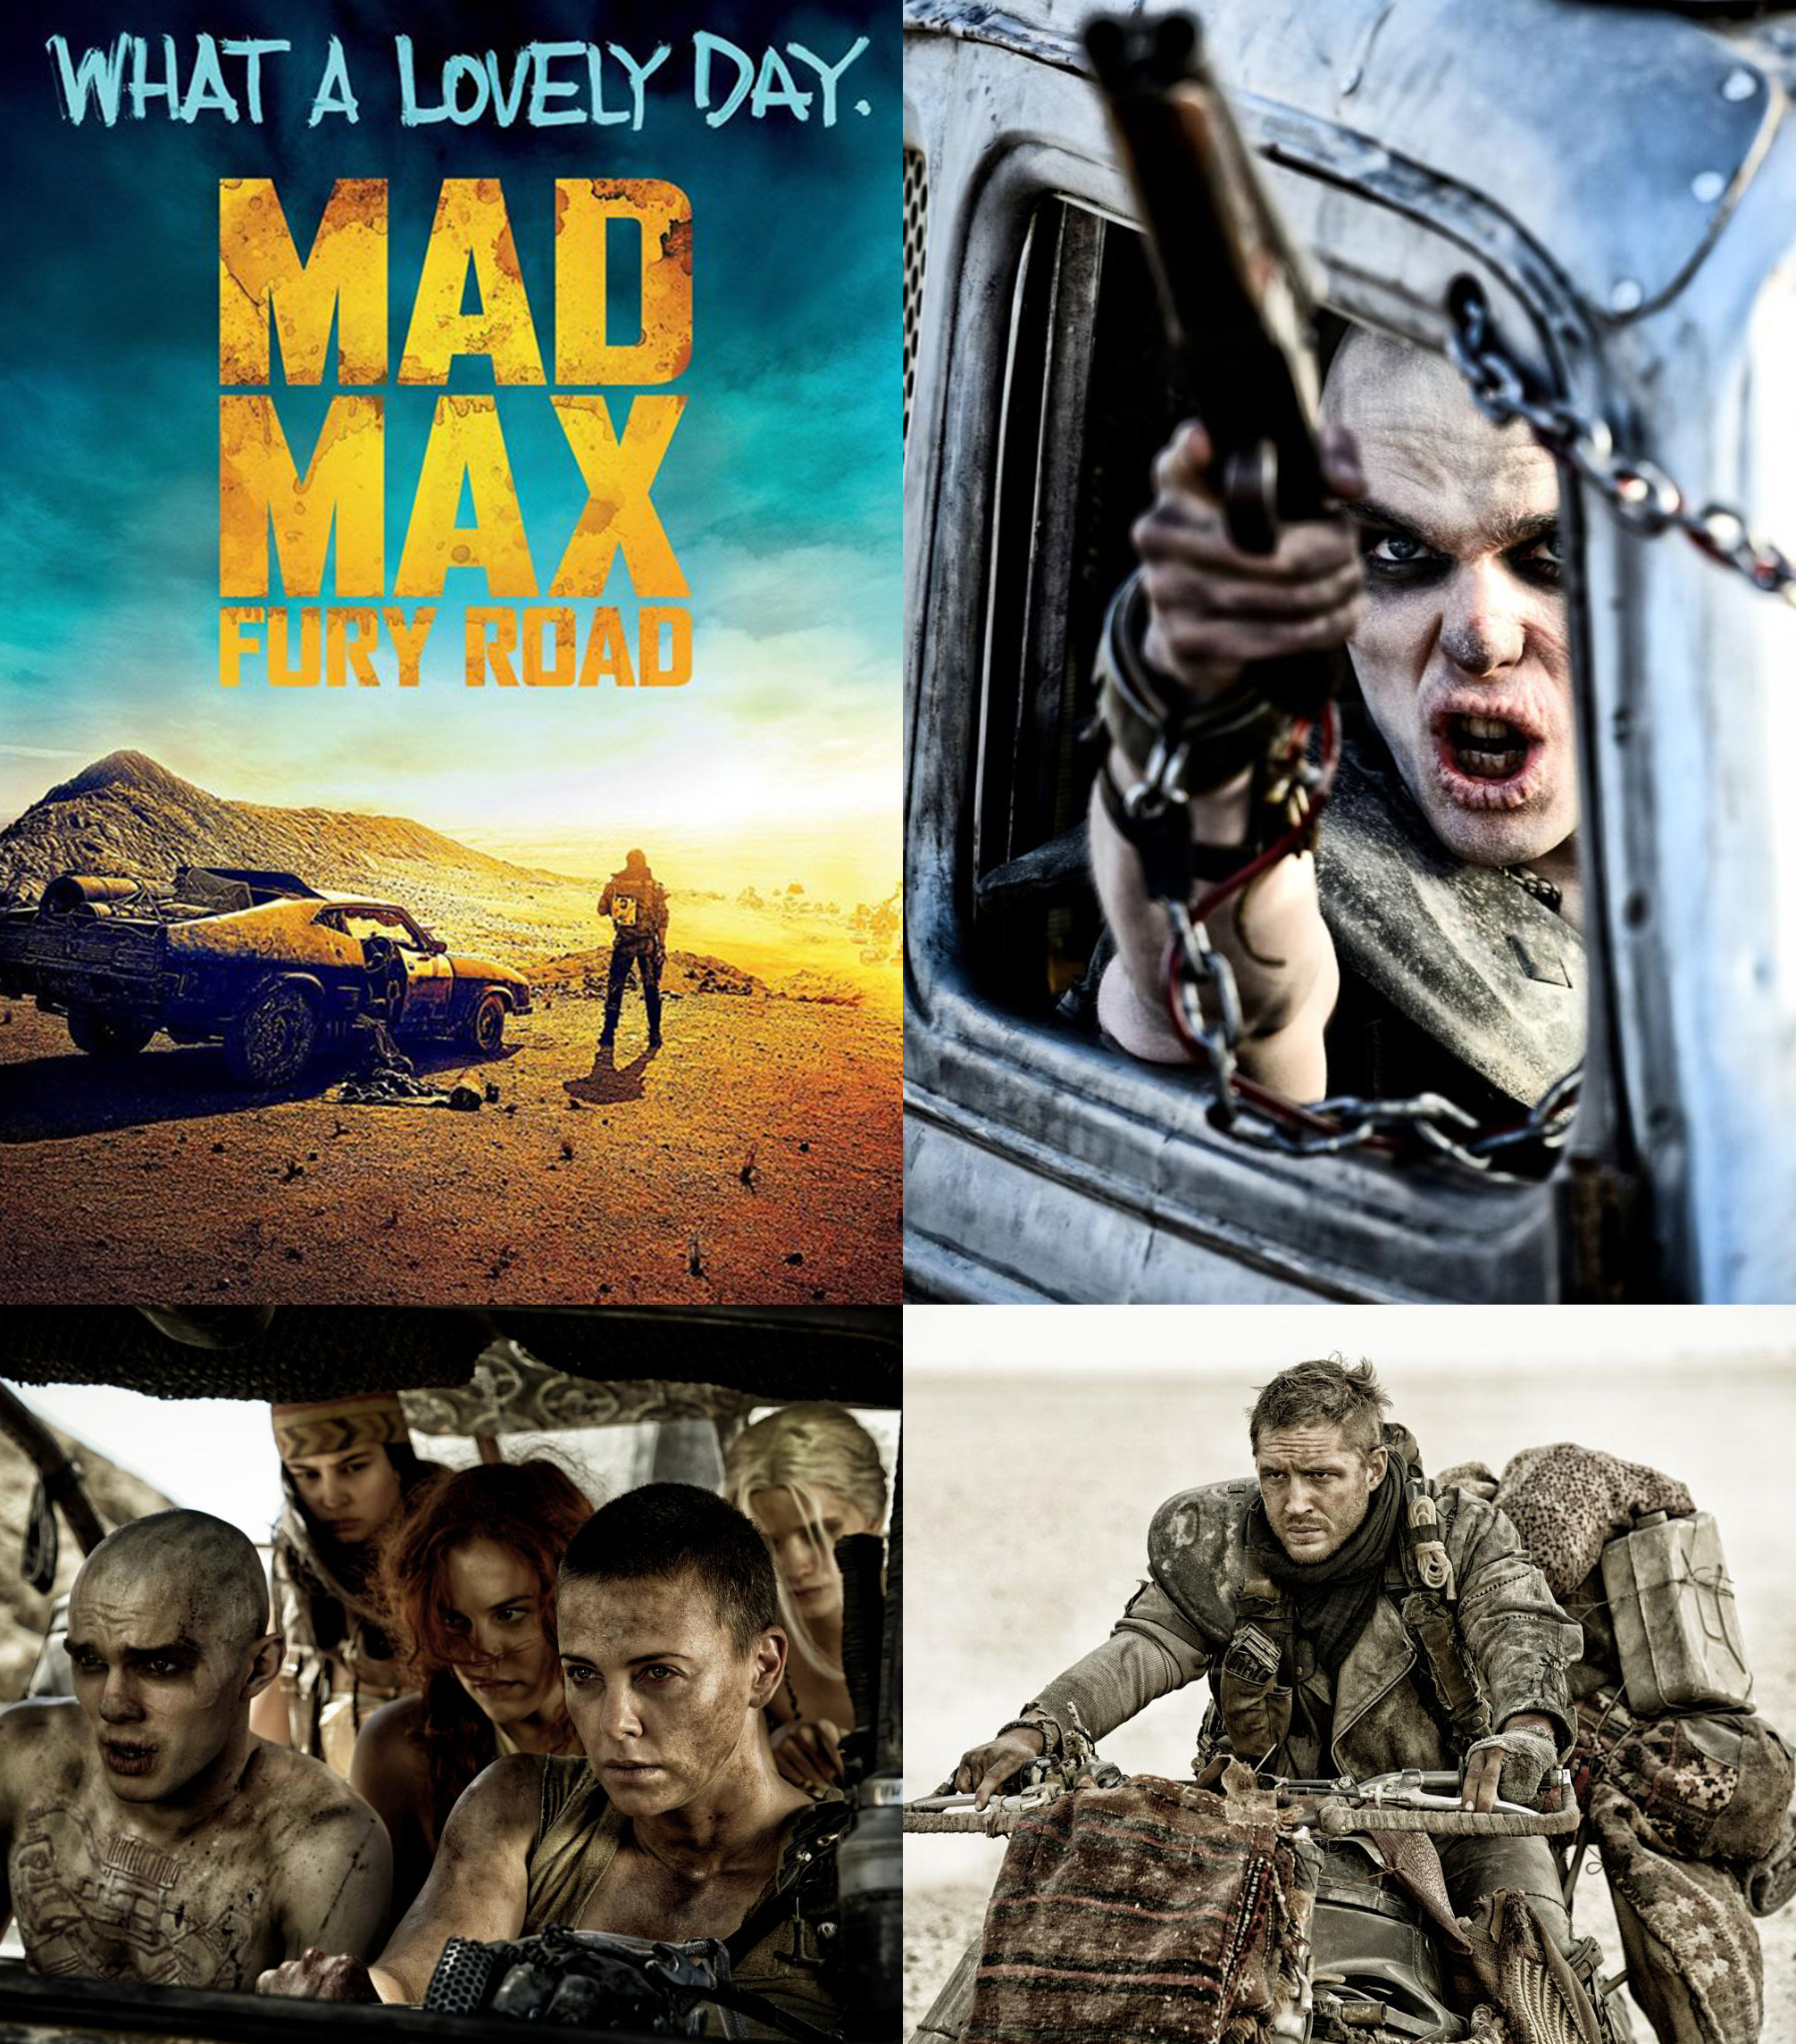 POSTER FURY ROAD MAD MAX ACTION FILM MOVIE WHAT A LOVELY DAY APOCALYPTIC MAY2015